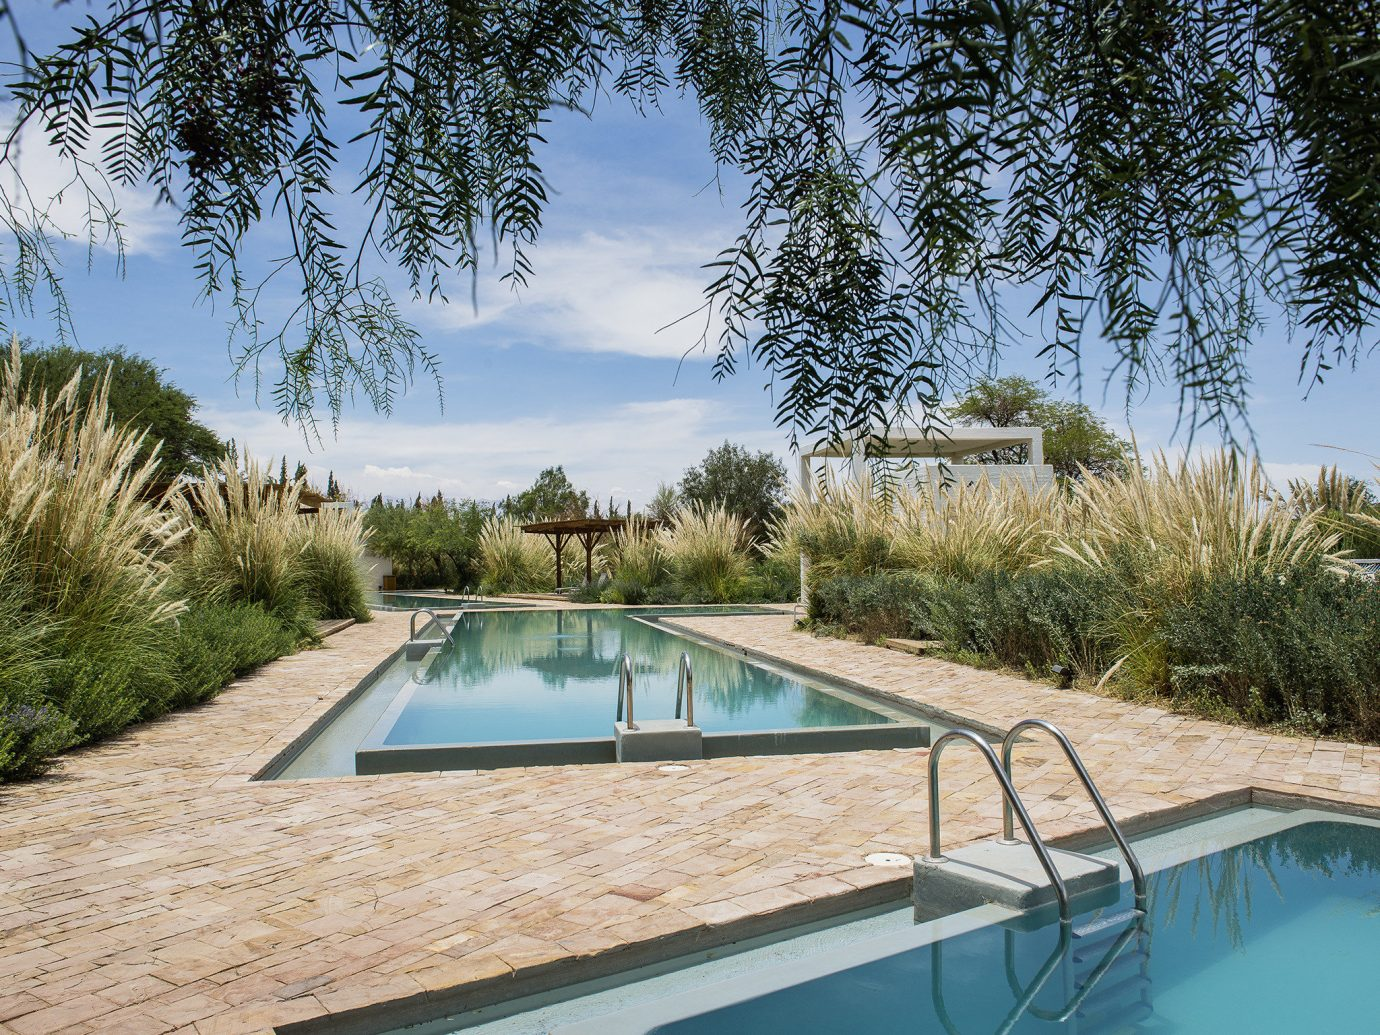 Trip Ideas swimming pool property estate real estate water leisure tree Villa Resort plant house reflecting pool outdoor structure sky arecales palm tree landscape amenity vacation landscaping